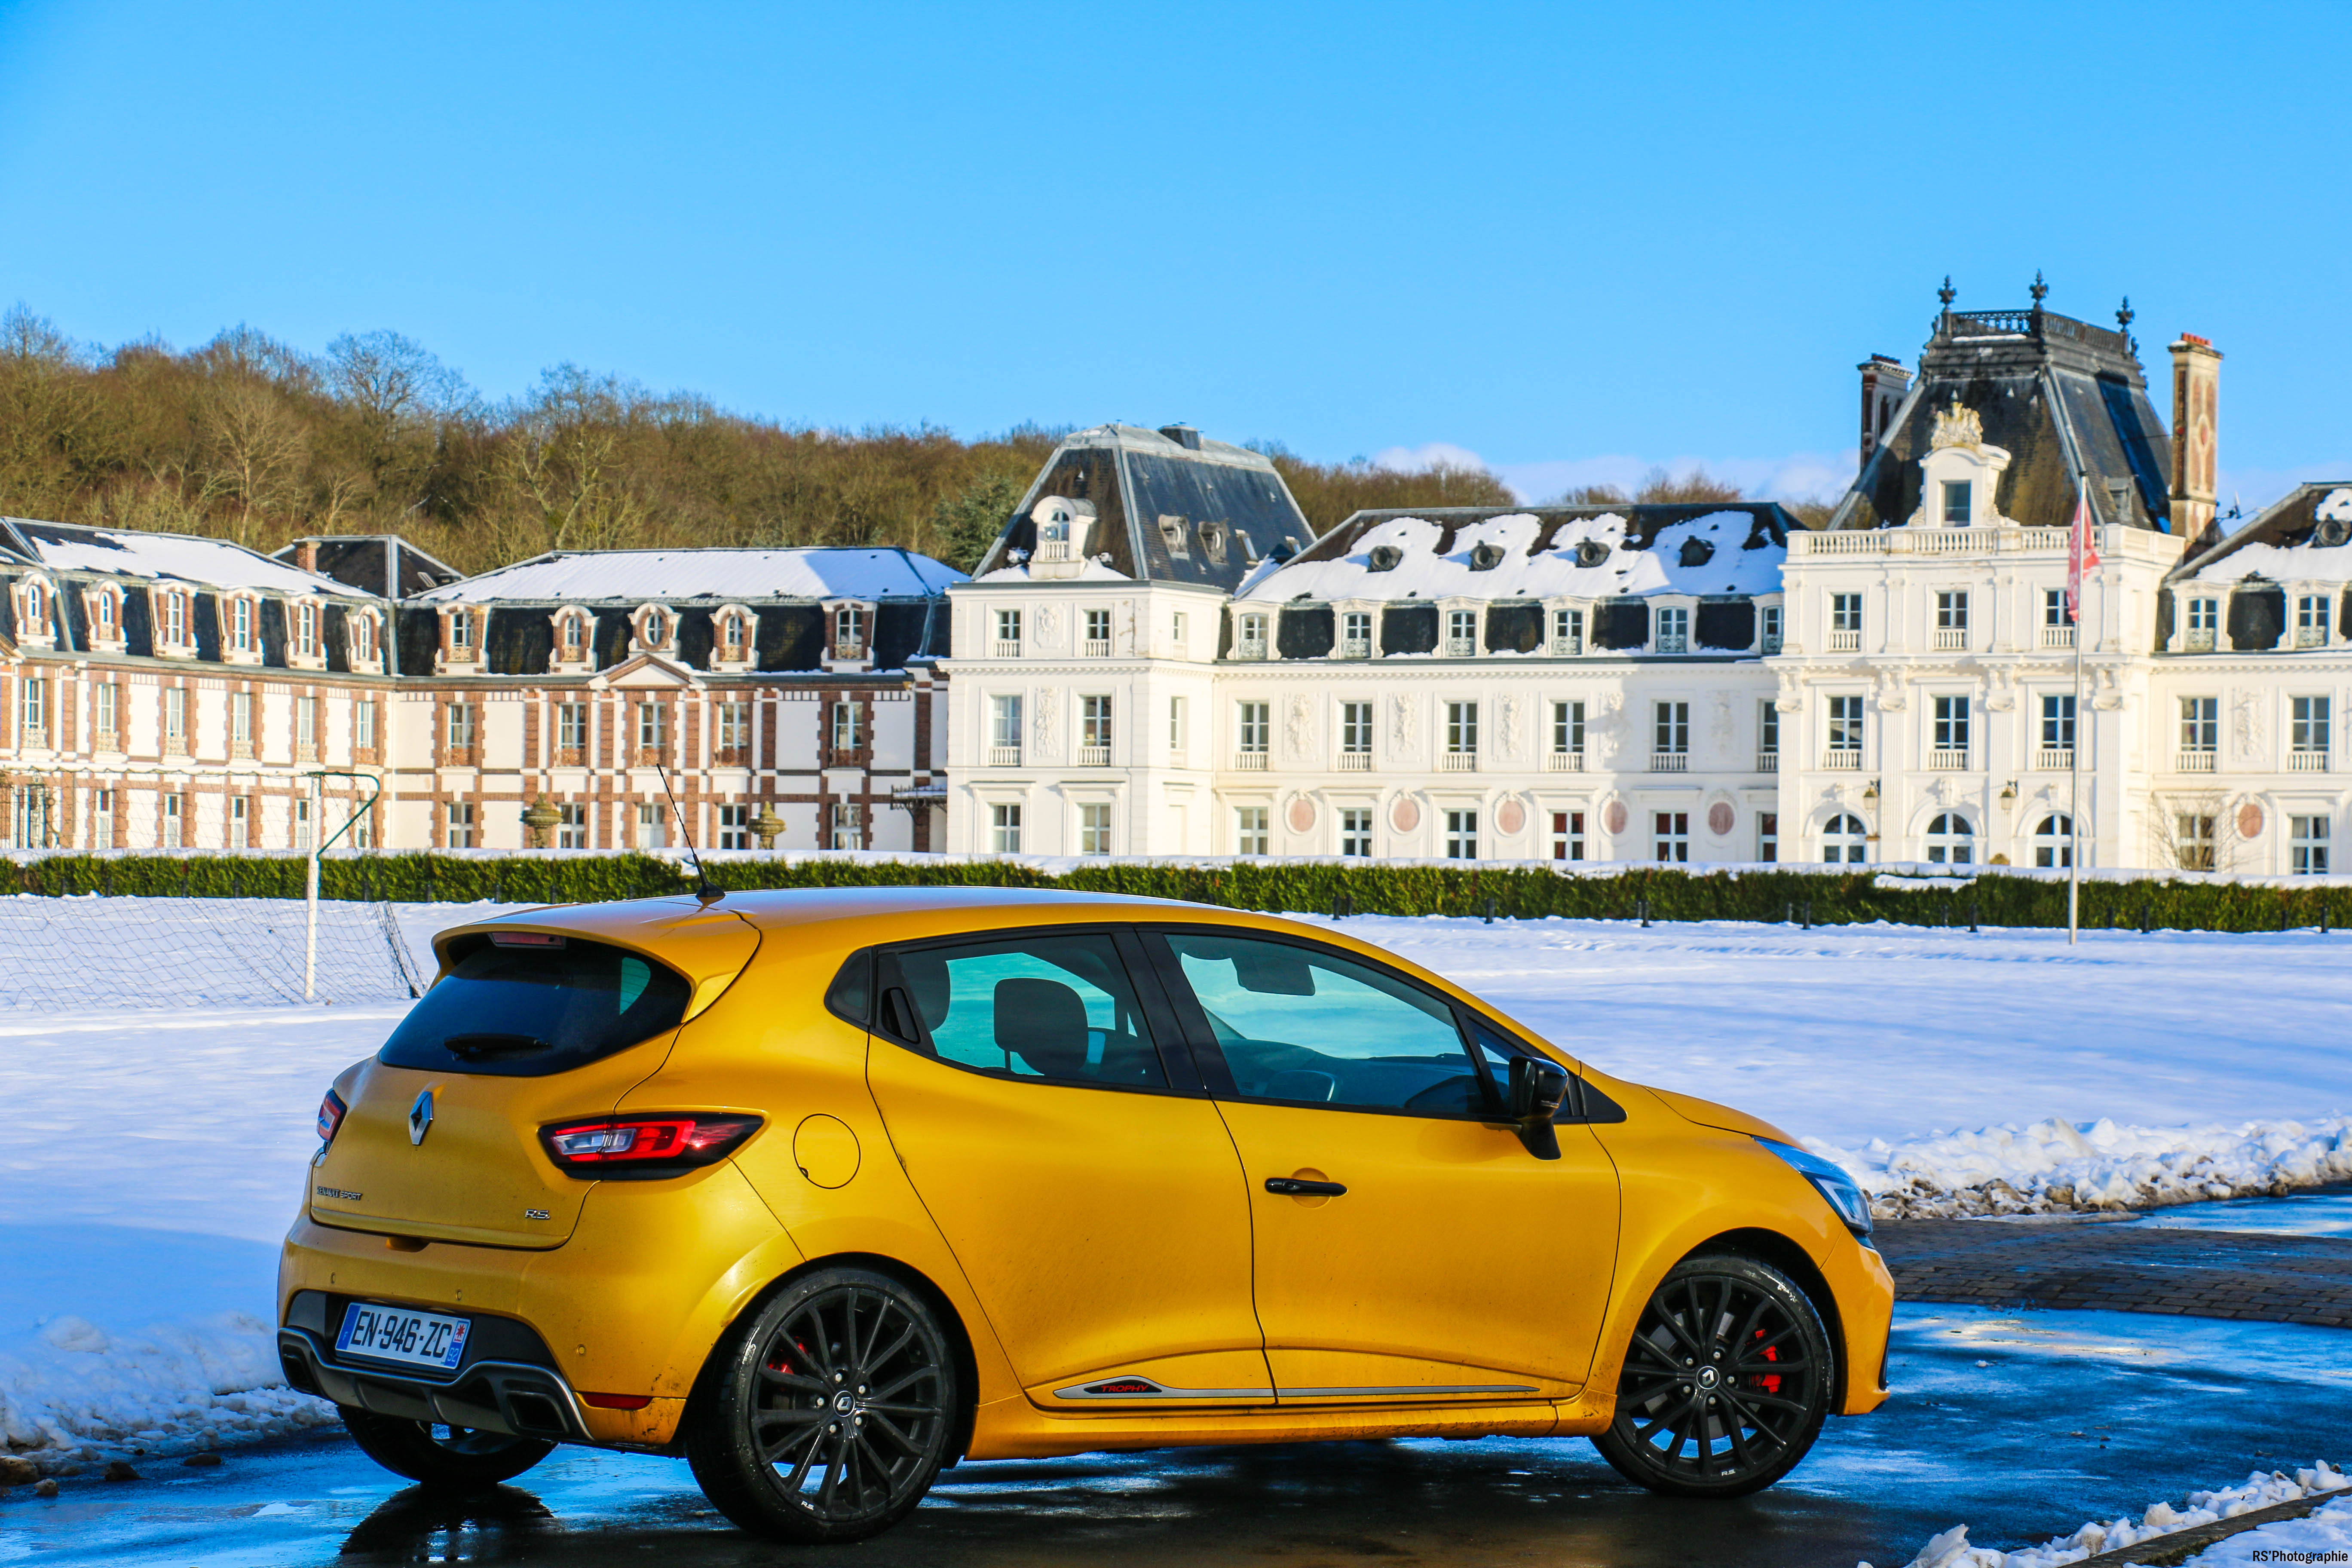 RenaultclioIVRSTrophy9-renault-clio-RS-trophy-arriere-rear-Arnaud Demasier-RSPhotographie